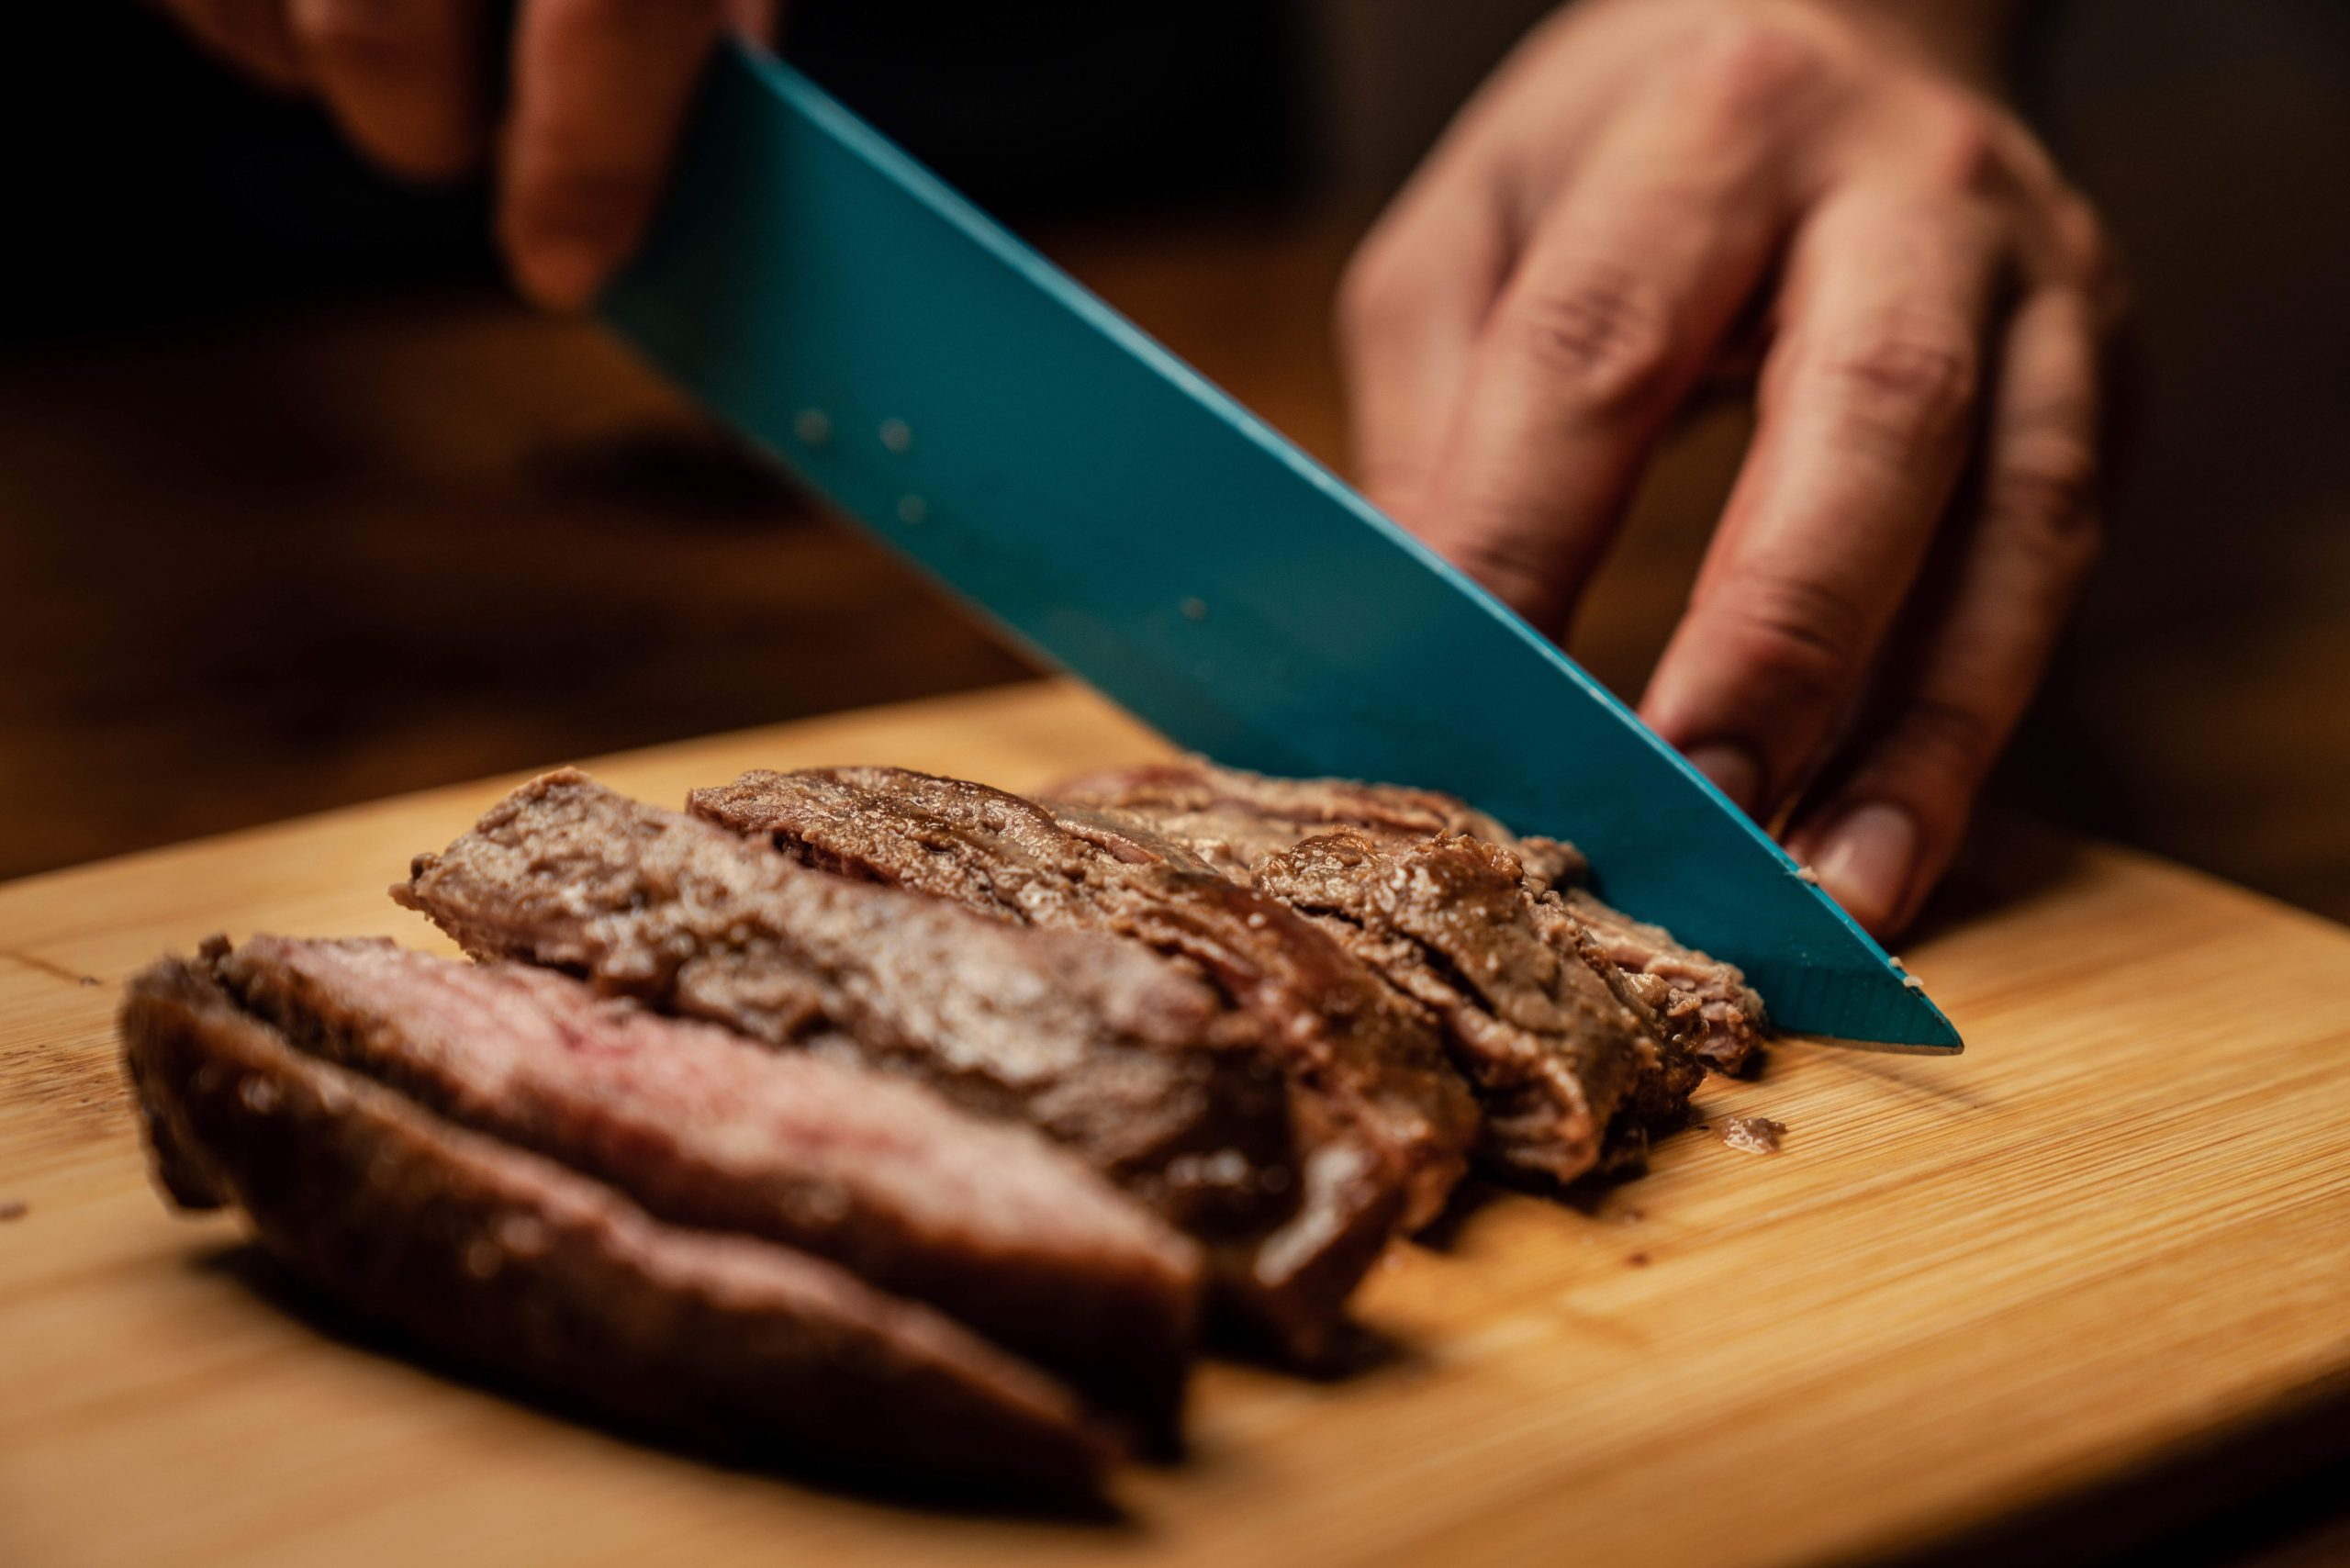 man cutting meat with knif